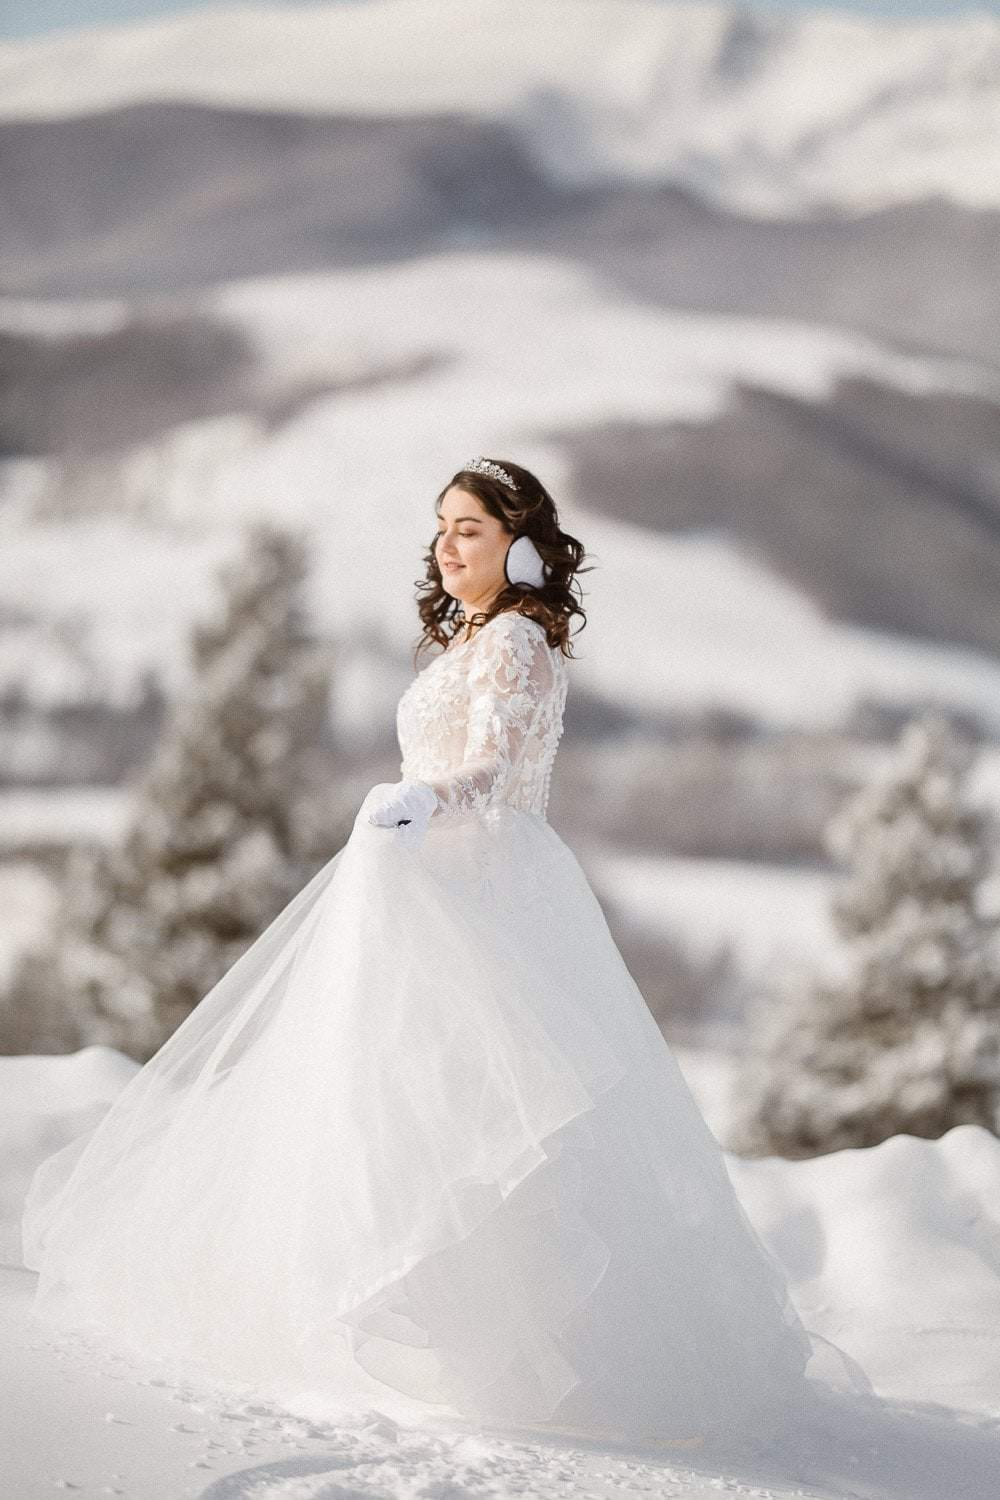 ROCKY MOUNTAINS COLORADO WINTER ELOPEMENT |COLORADO DESTINATION ADVENTURE ELOPEMENT PHOTOGRAPHER|